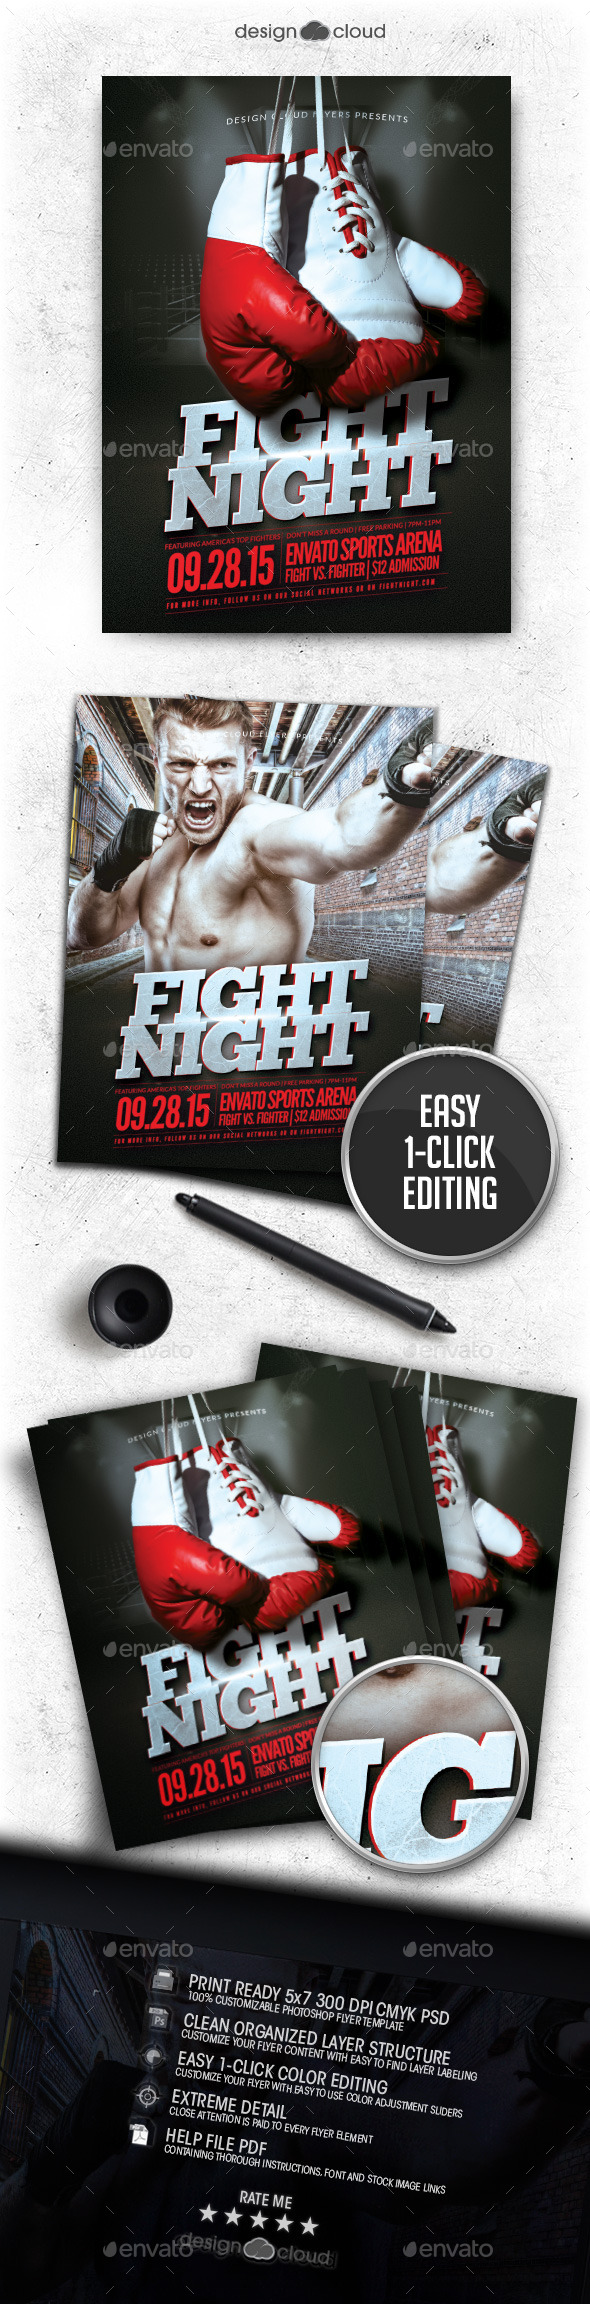 Boxing/MMA Fight Night Flyer Template - Sports Events